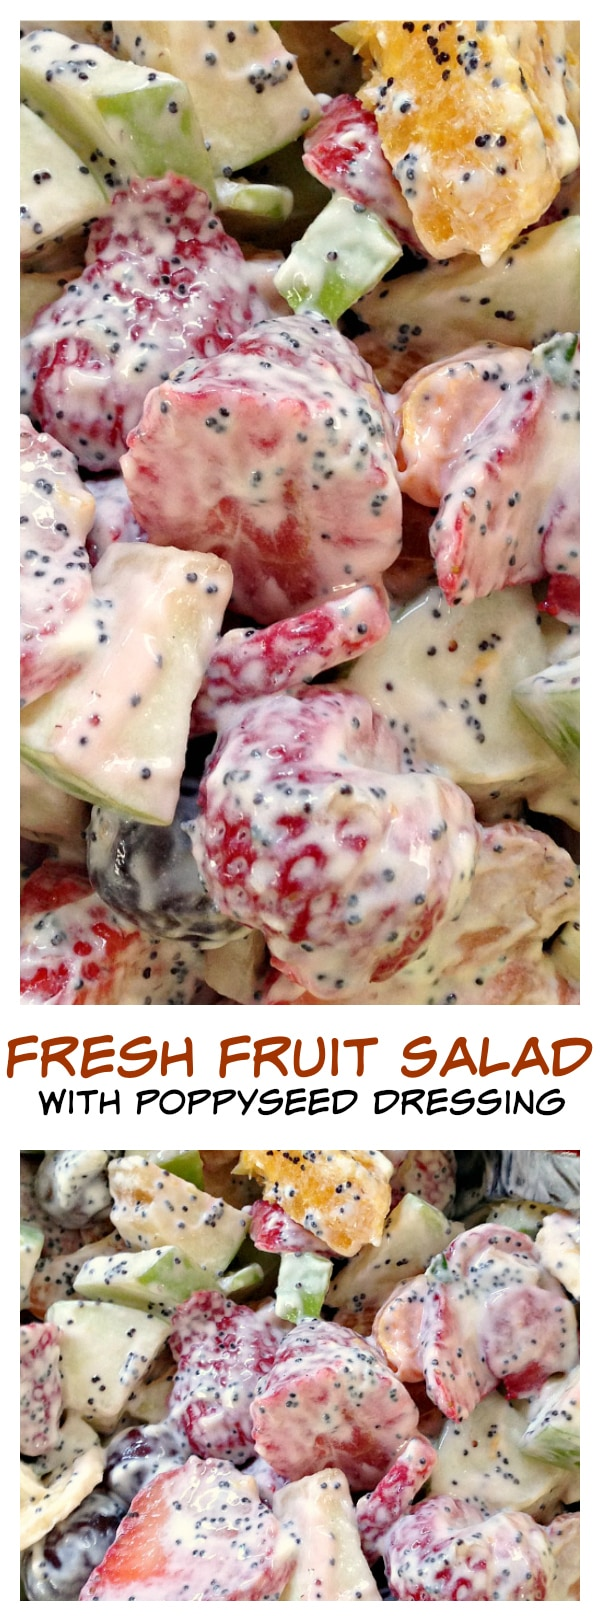 Fresh Fruit Salad with Poppyseed Dressing